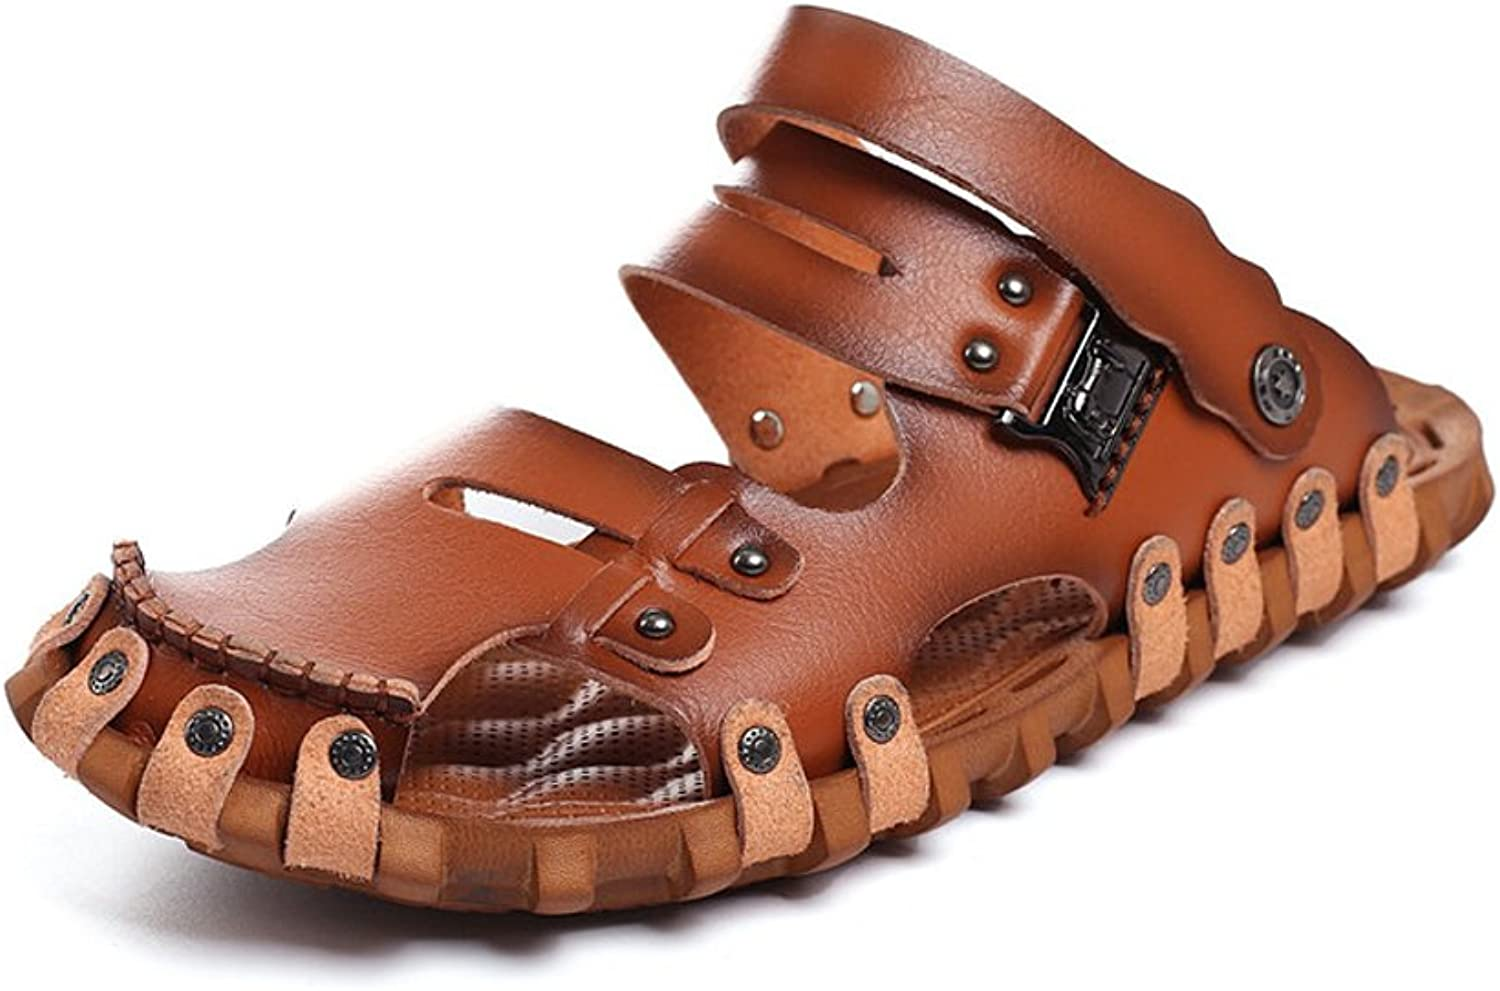 Mens Sandals, Men's shoes Leather Beach Flip Flops Slippers Non-Slip Soft Flat Casual Backless Sandals (color   Brown, Size   7.5MUS)